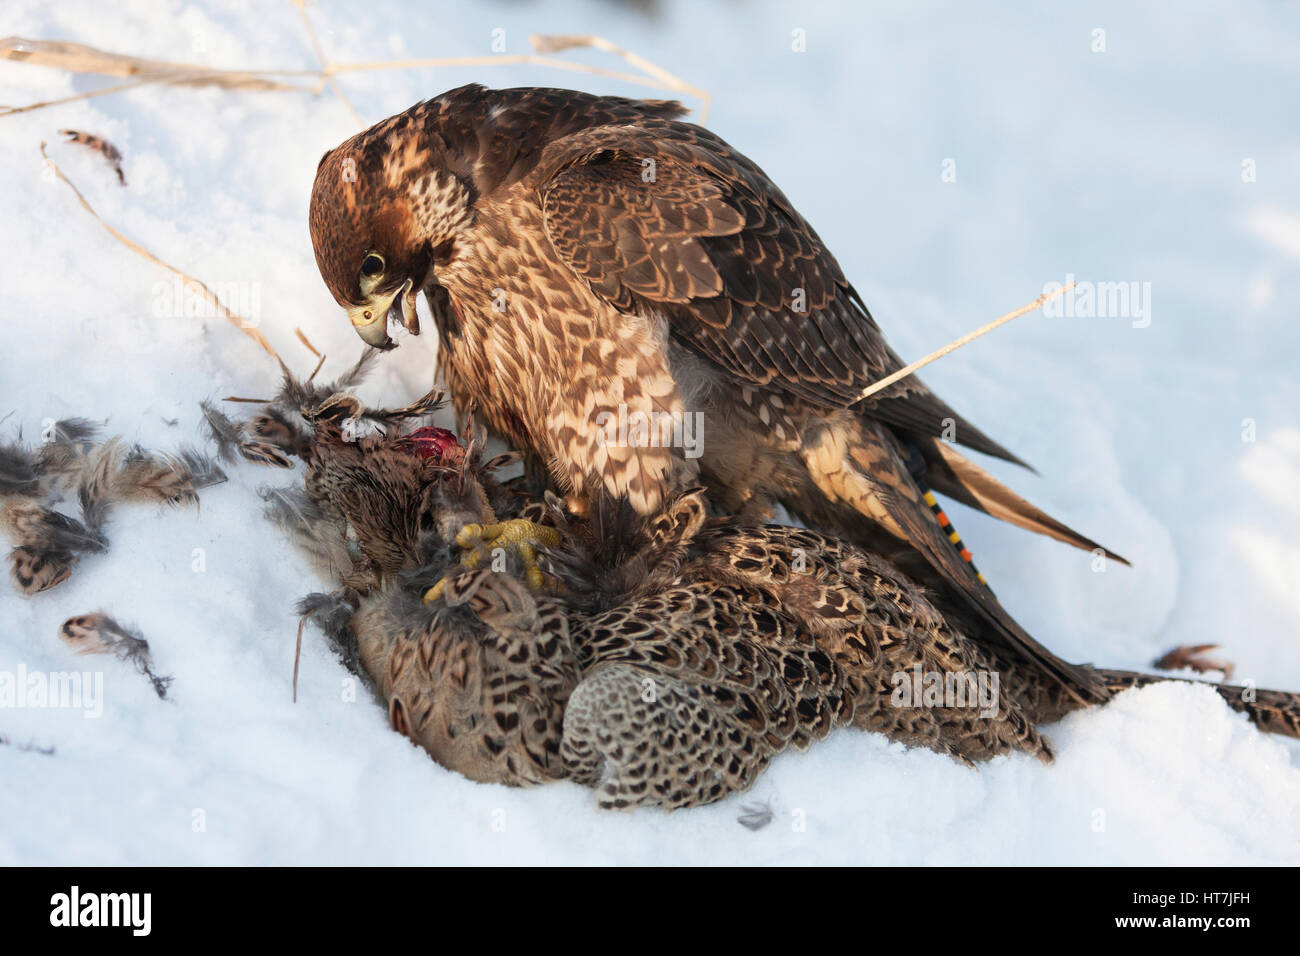 A Falcon With A Hunted Pheasant On Snow - Stock Image